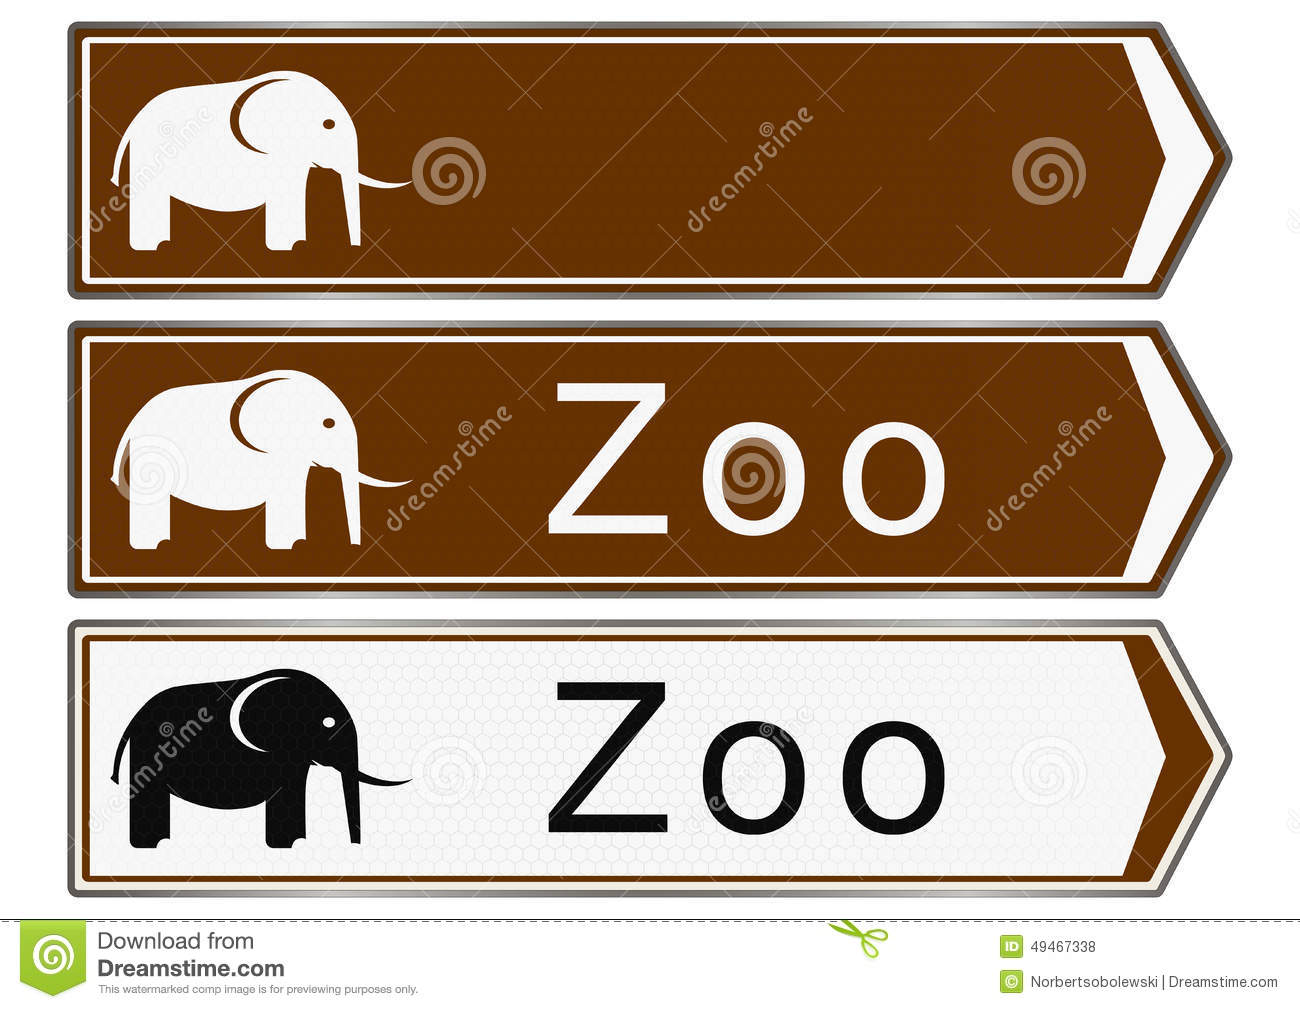 Zoo Sign Stock Illustration - Image: 49467338 Zoo Road Sign